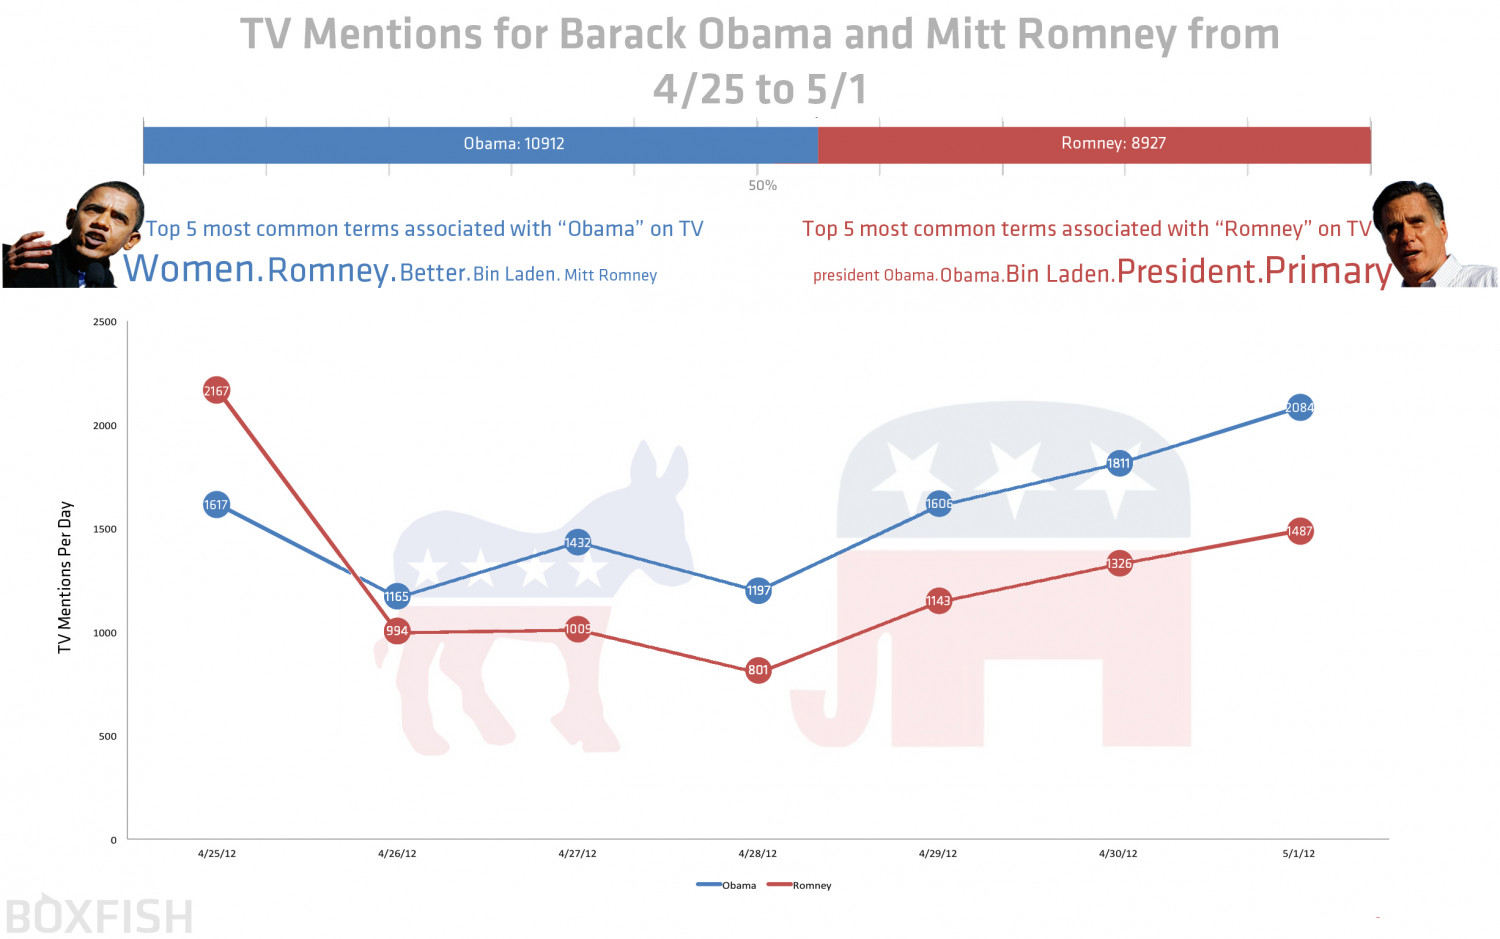 TV Mentions for Barack Obama and Mitt Romney from 4/25 to 5/1 Infographic